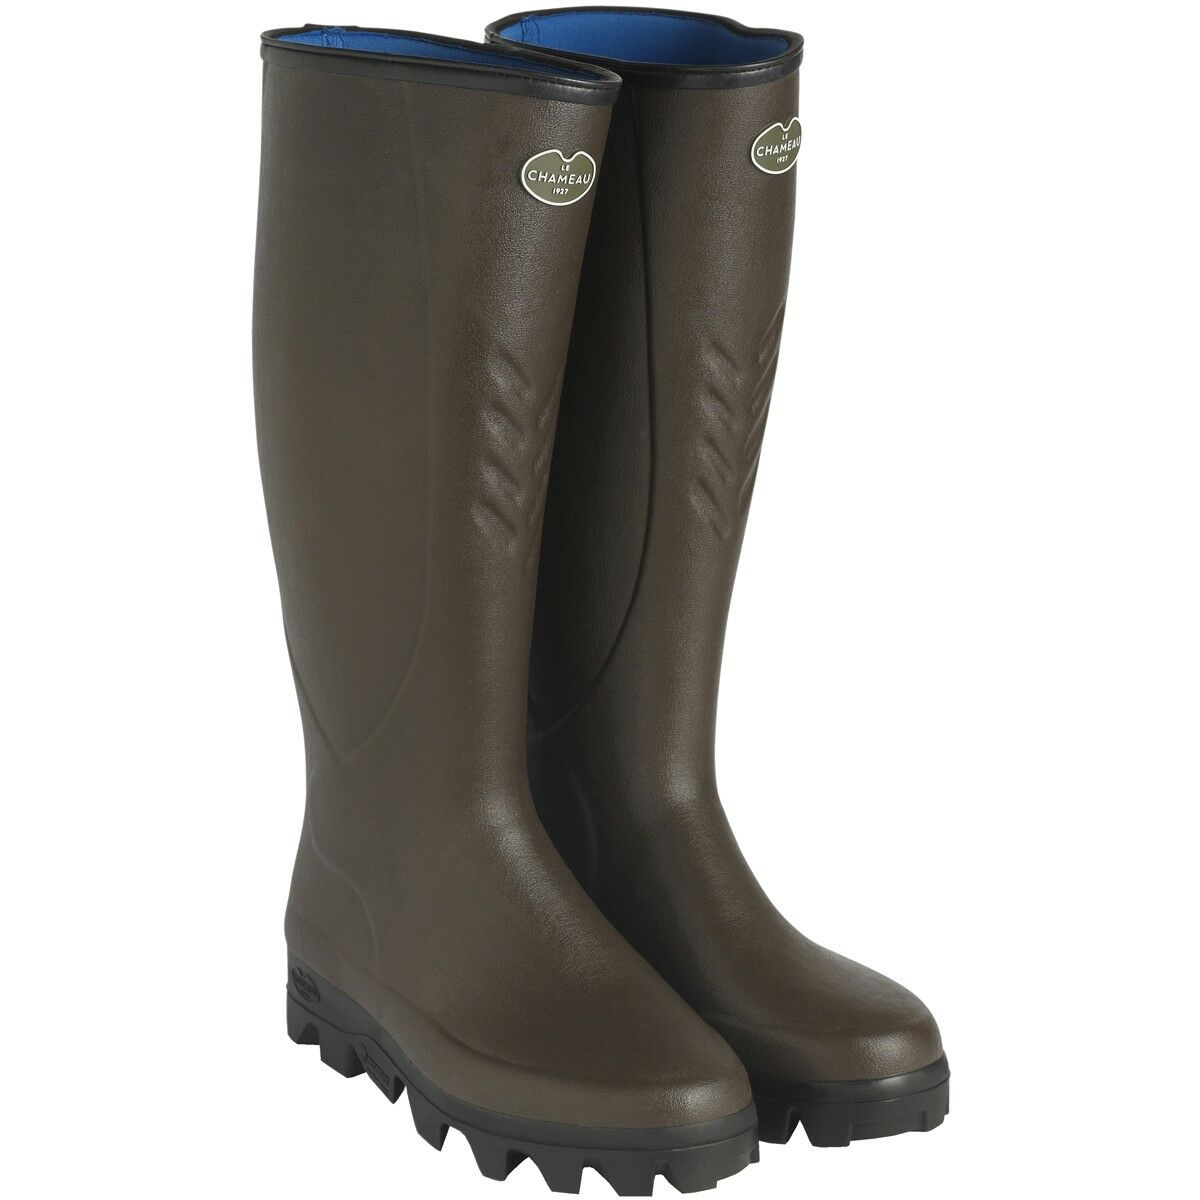 Le Chameau BTE Ceres Neo Neoprene Wellington Boots green Wellies